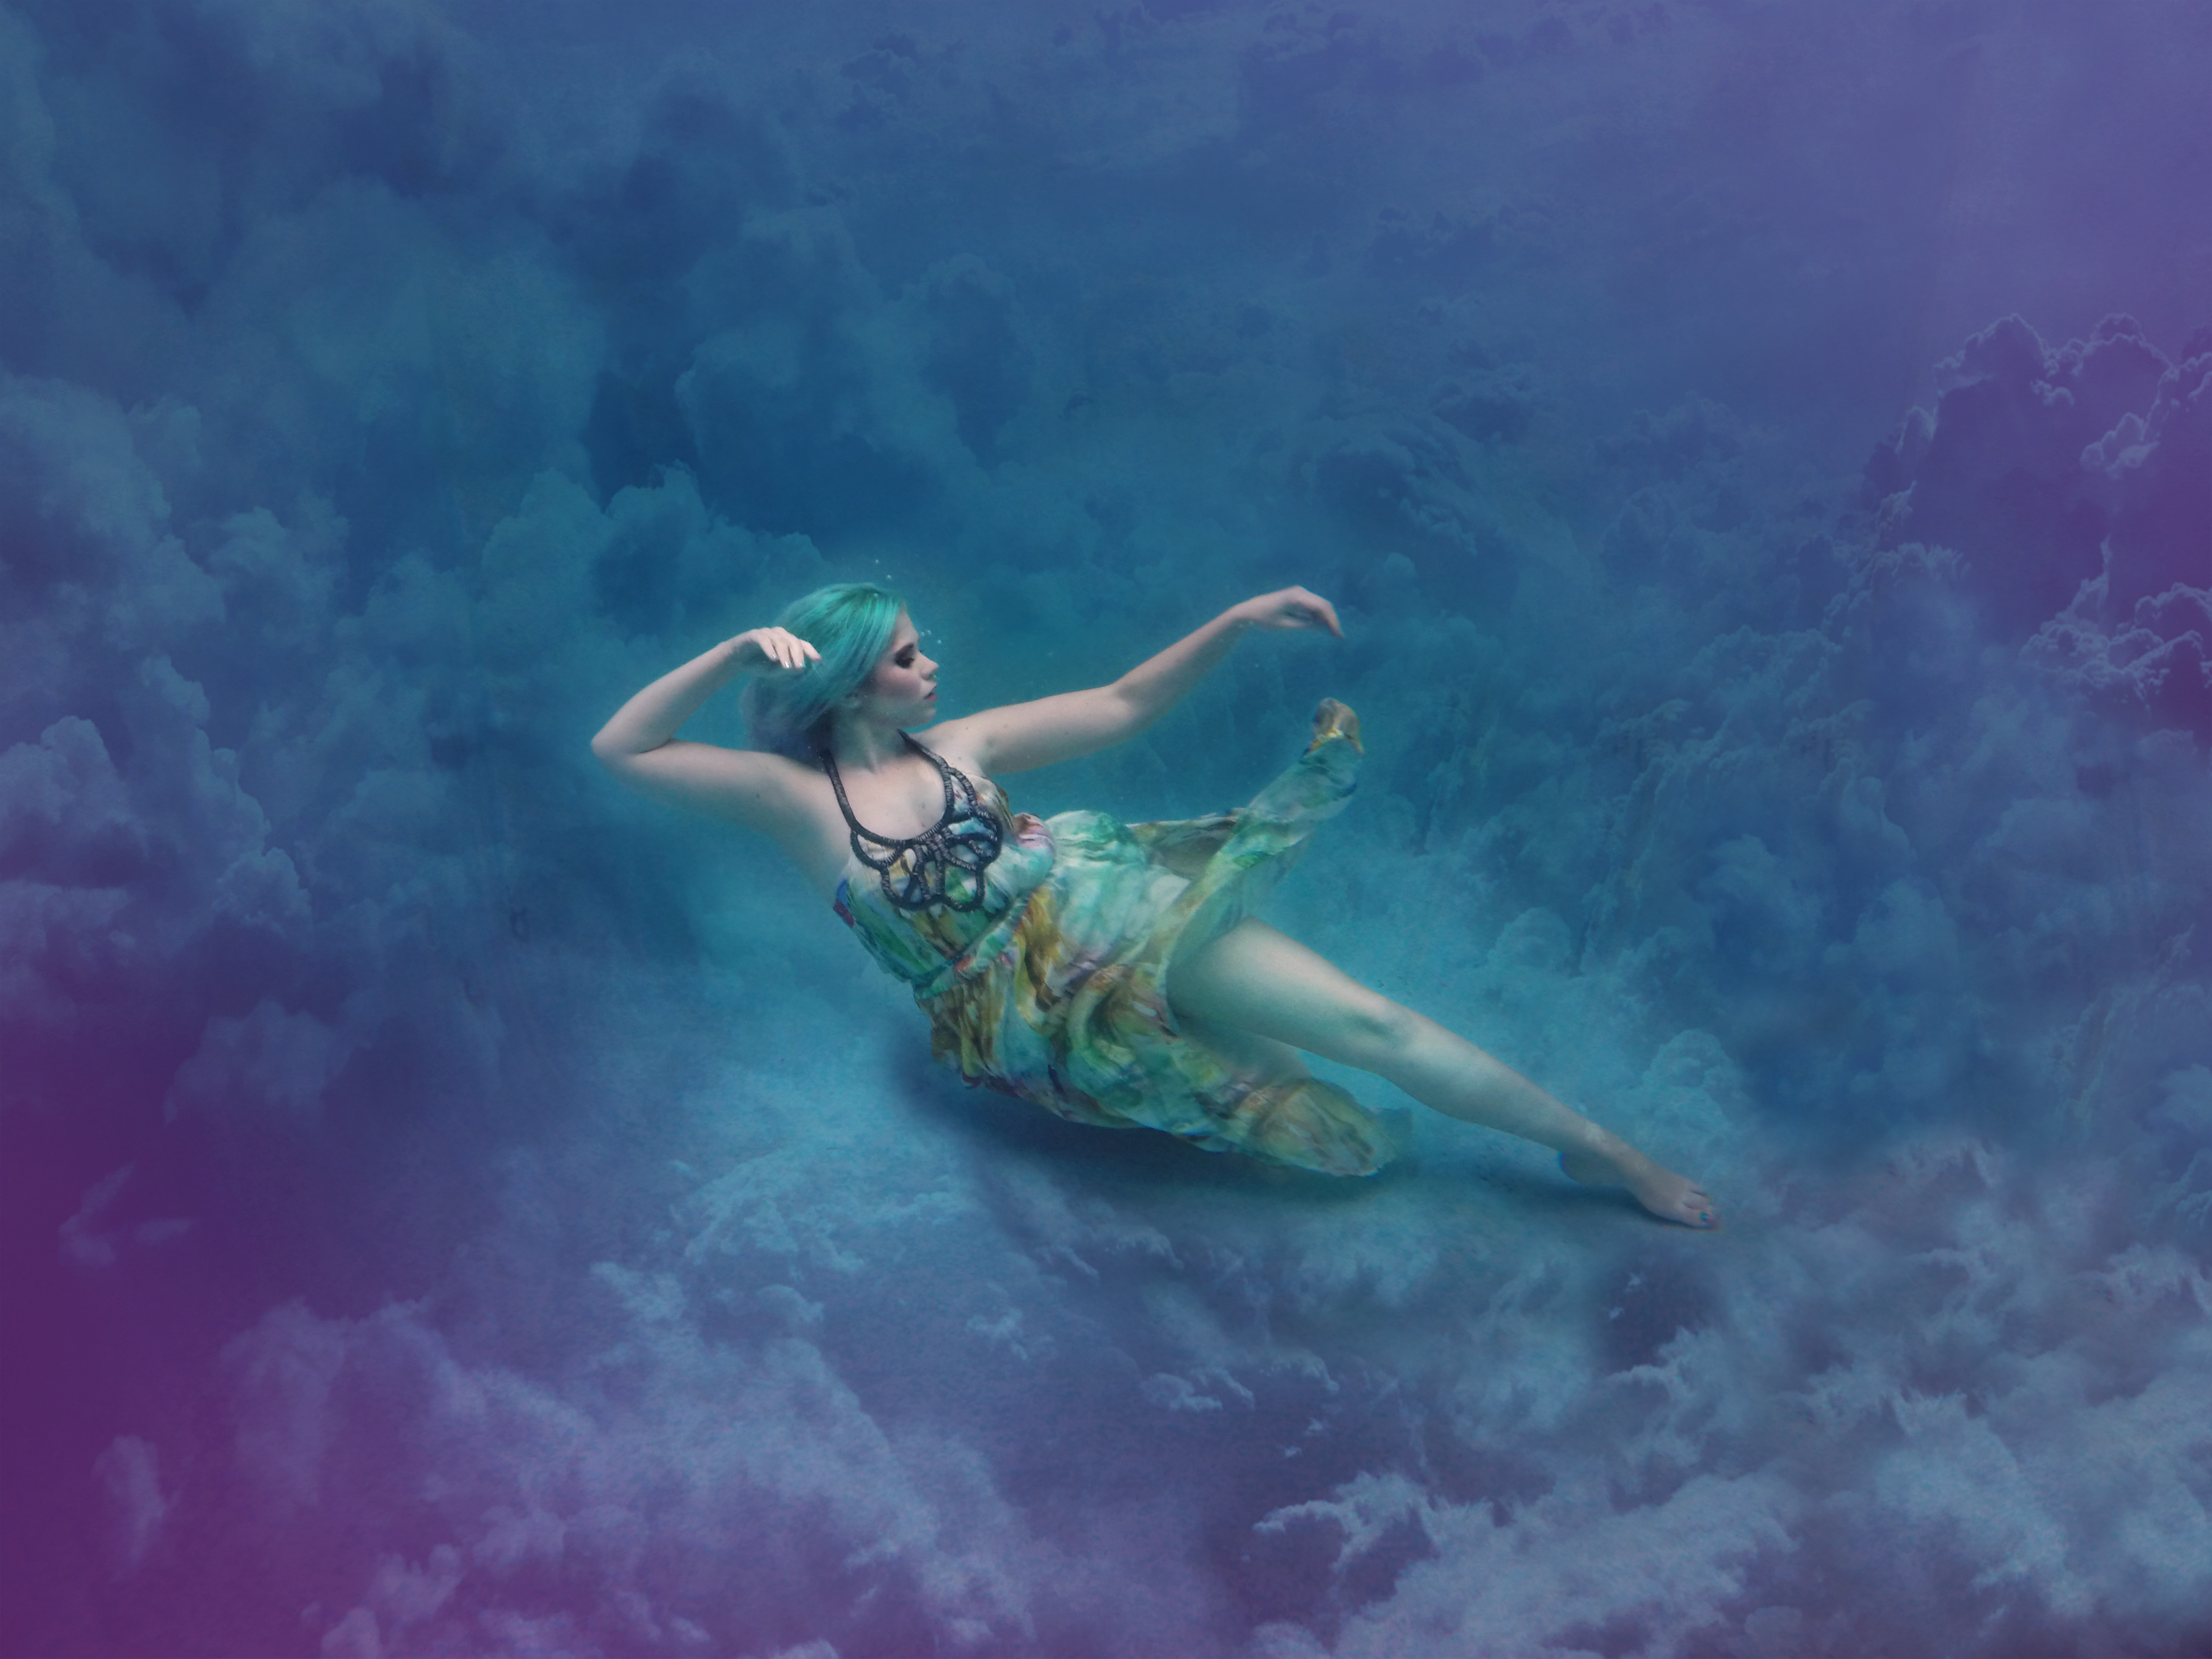 Photography by Busselton Mermaids